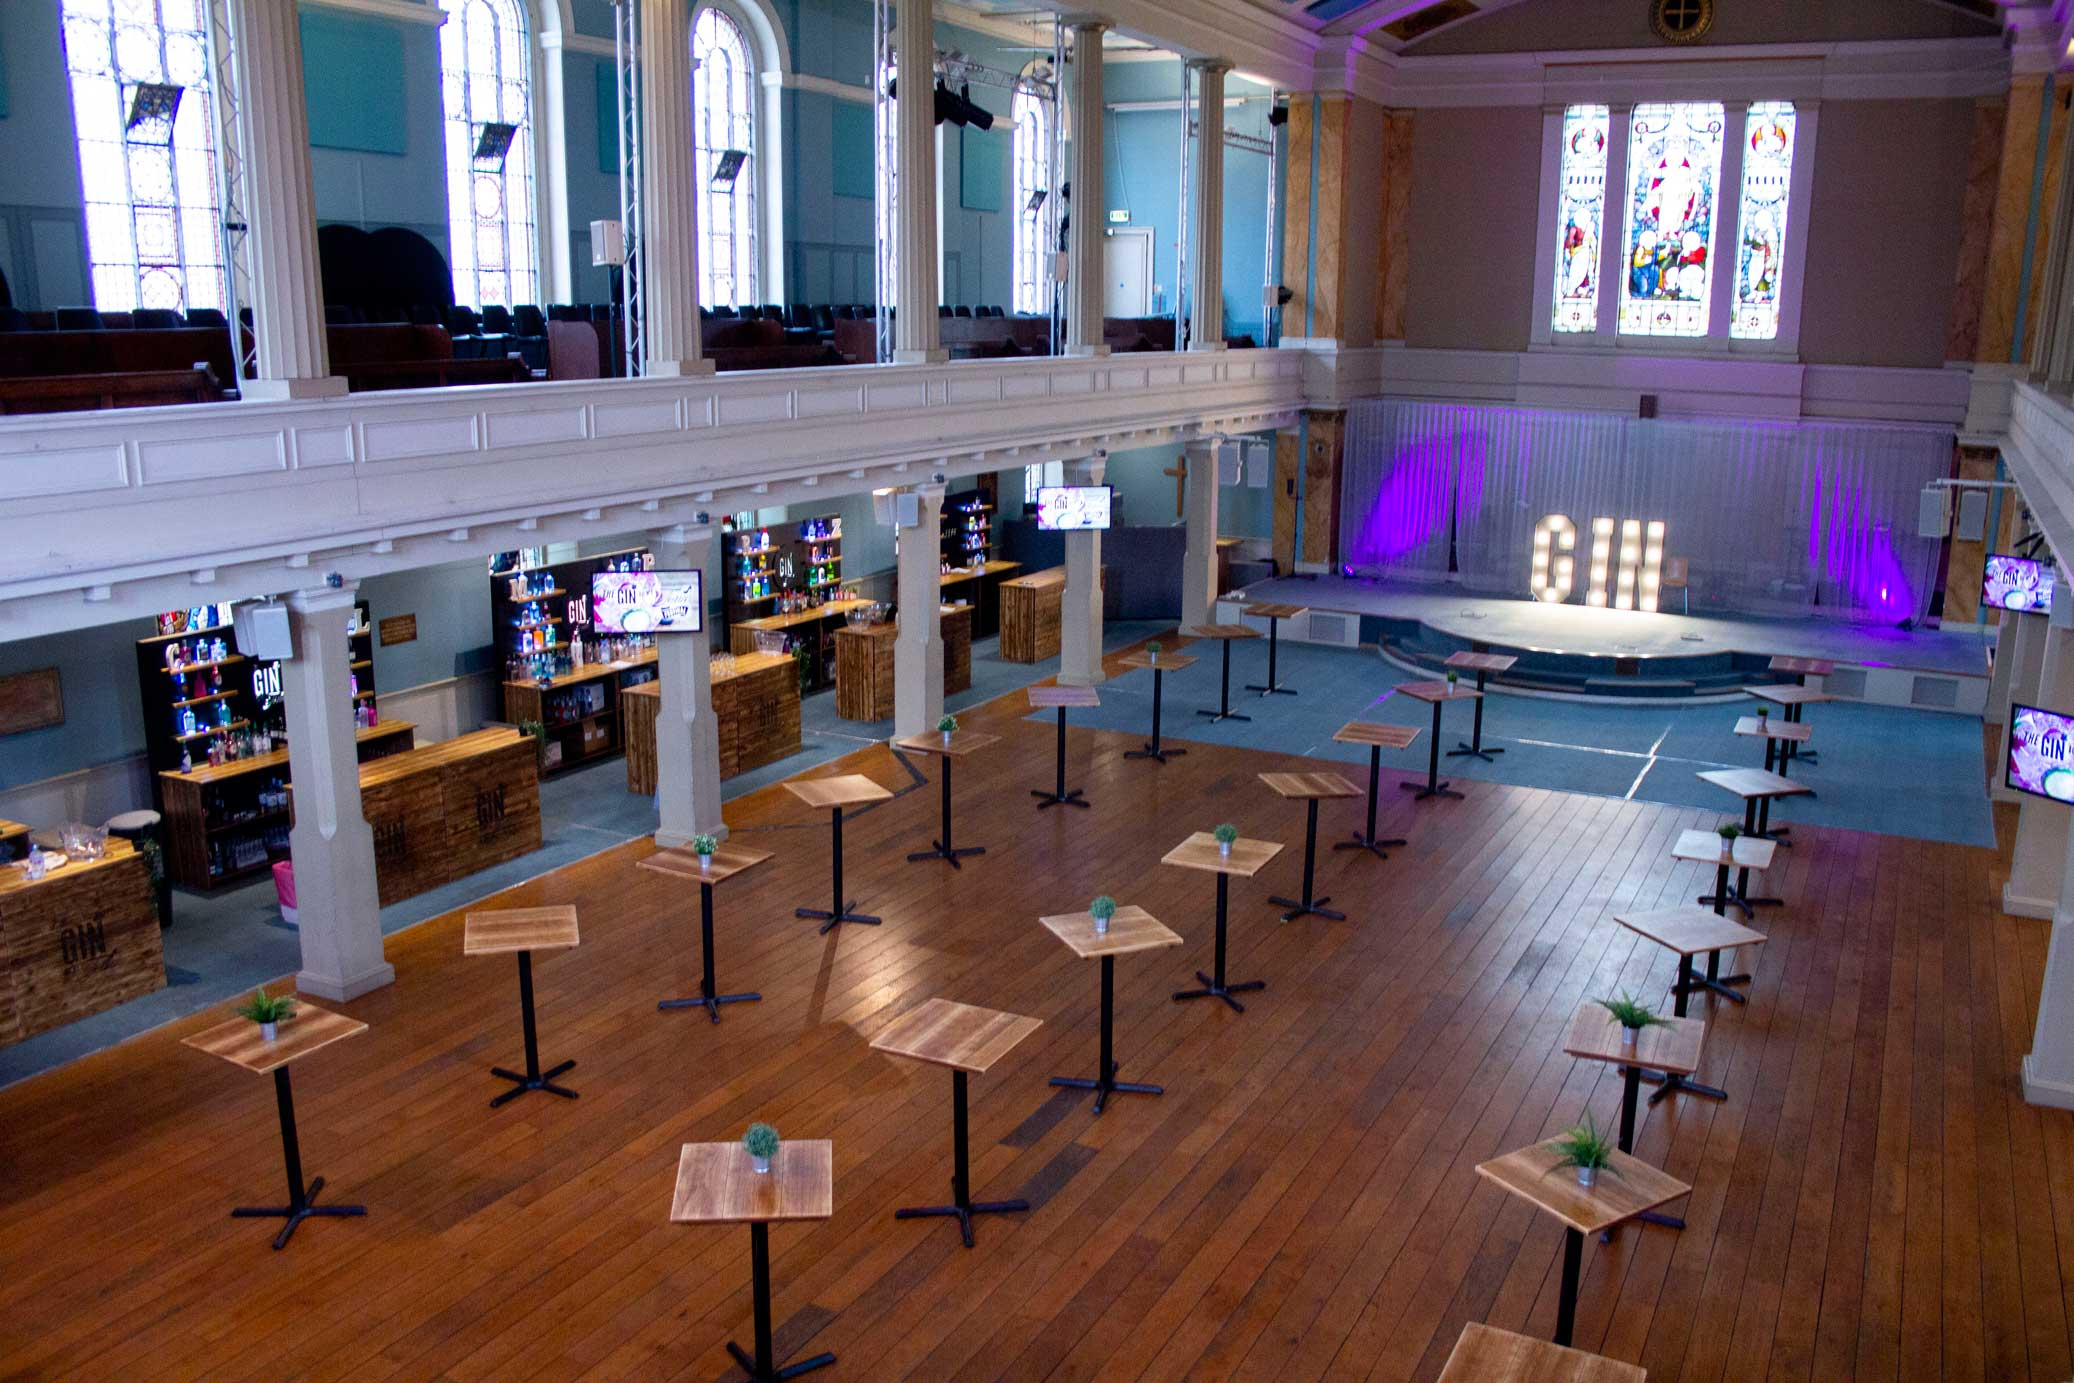 venue set up with poseur tables for alcohol tasting festival